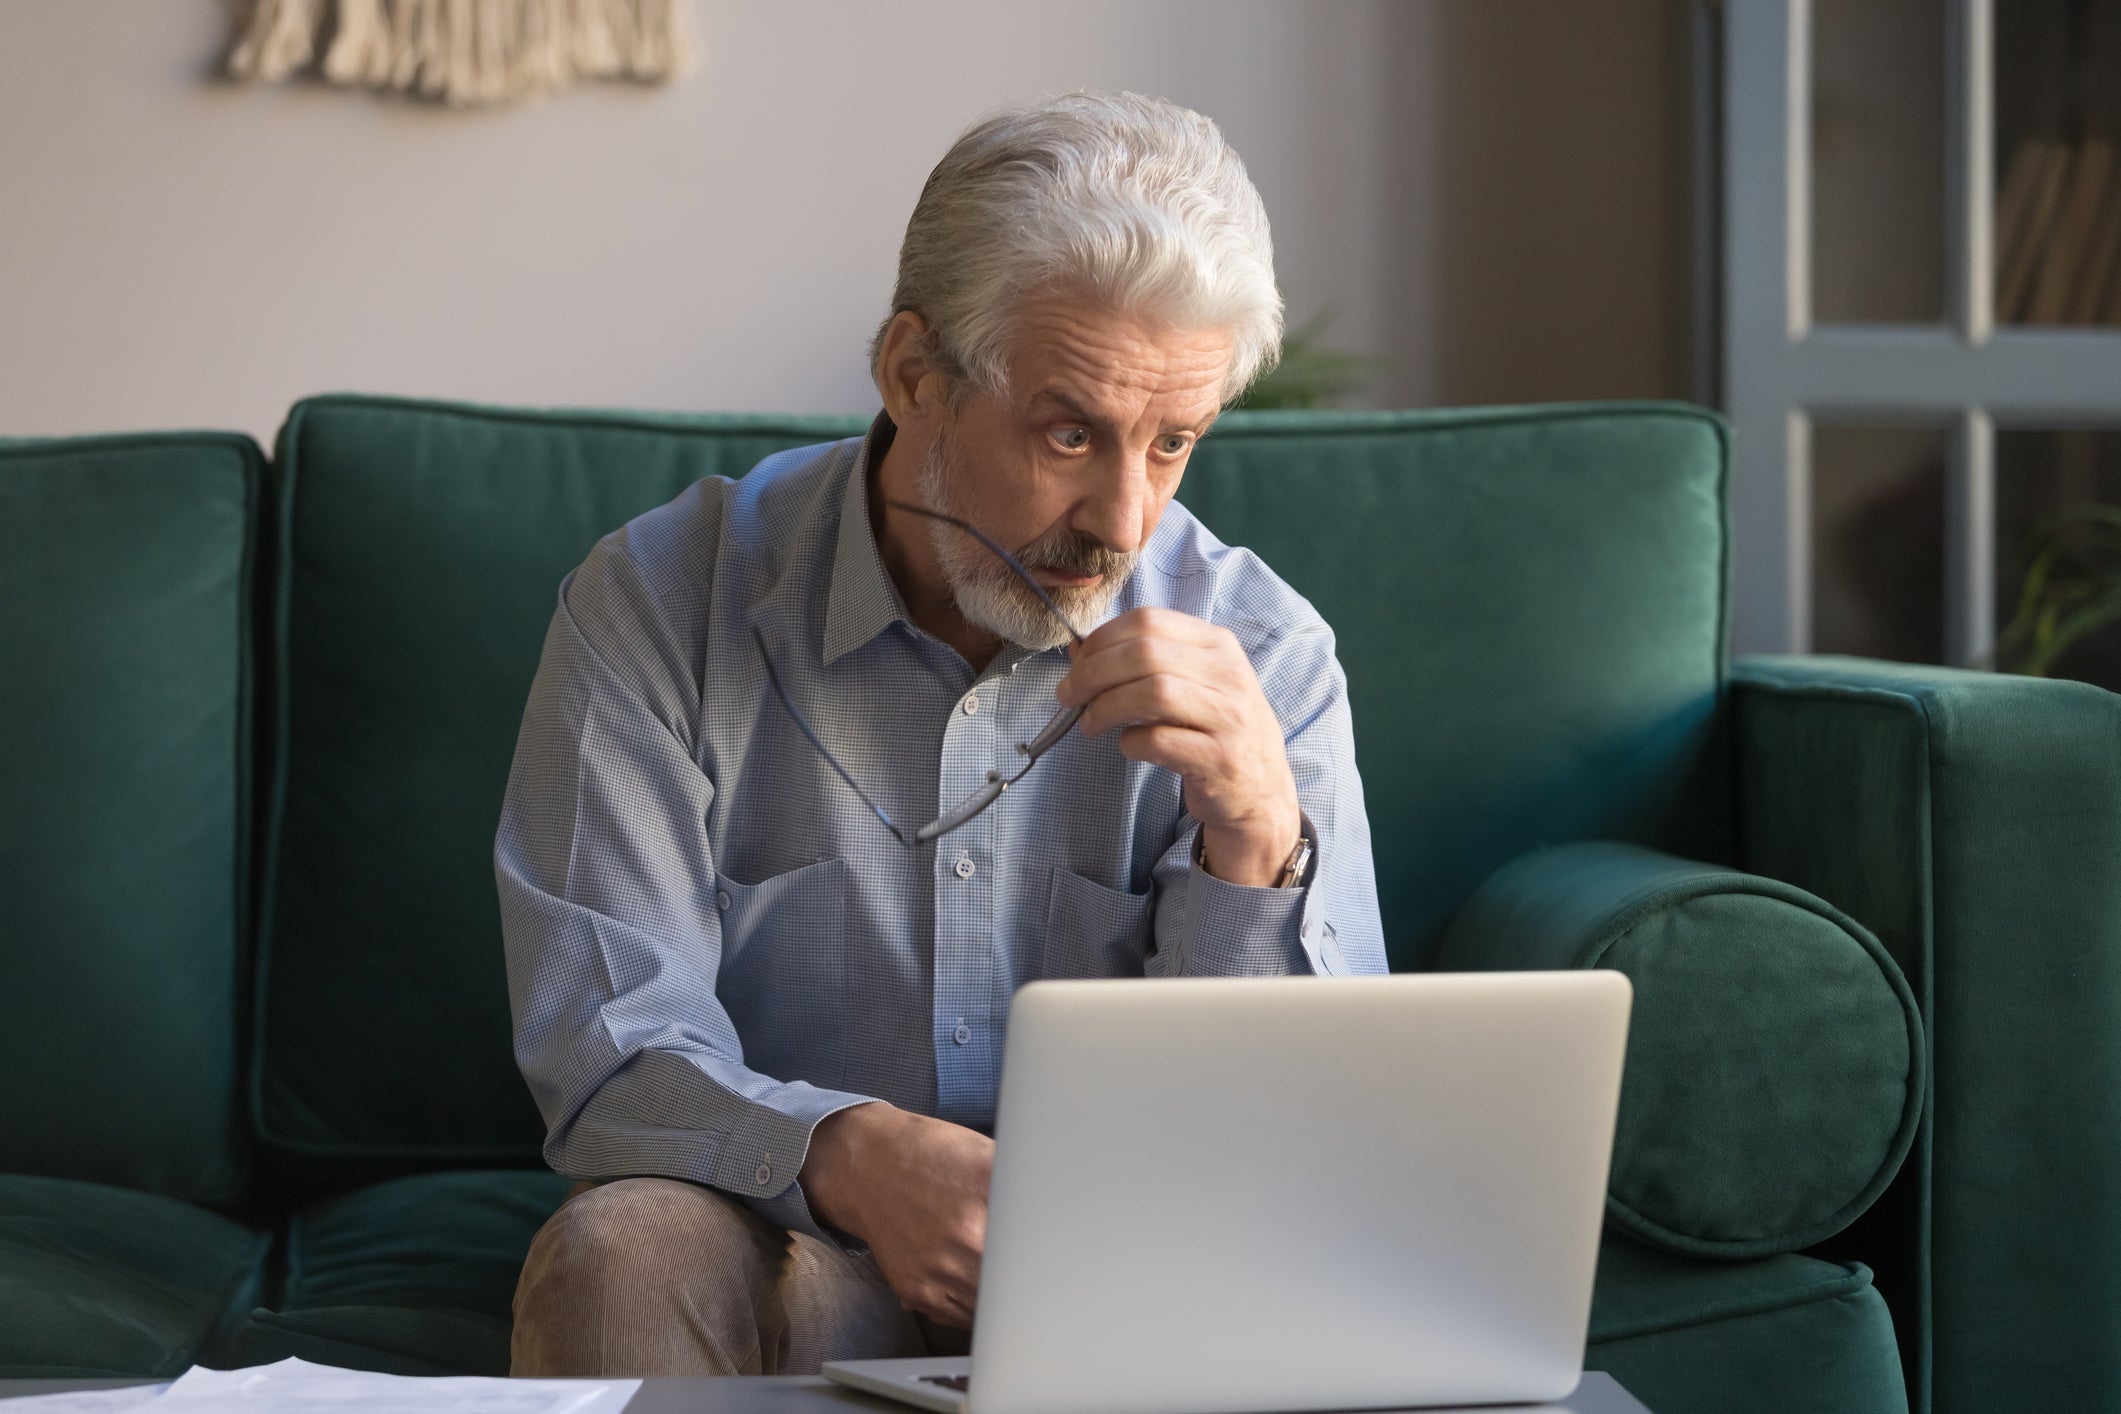 4 Social Security Mistakes That Could Cost You Up to $280,000